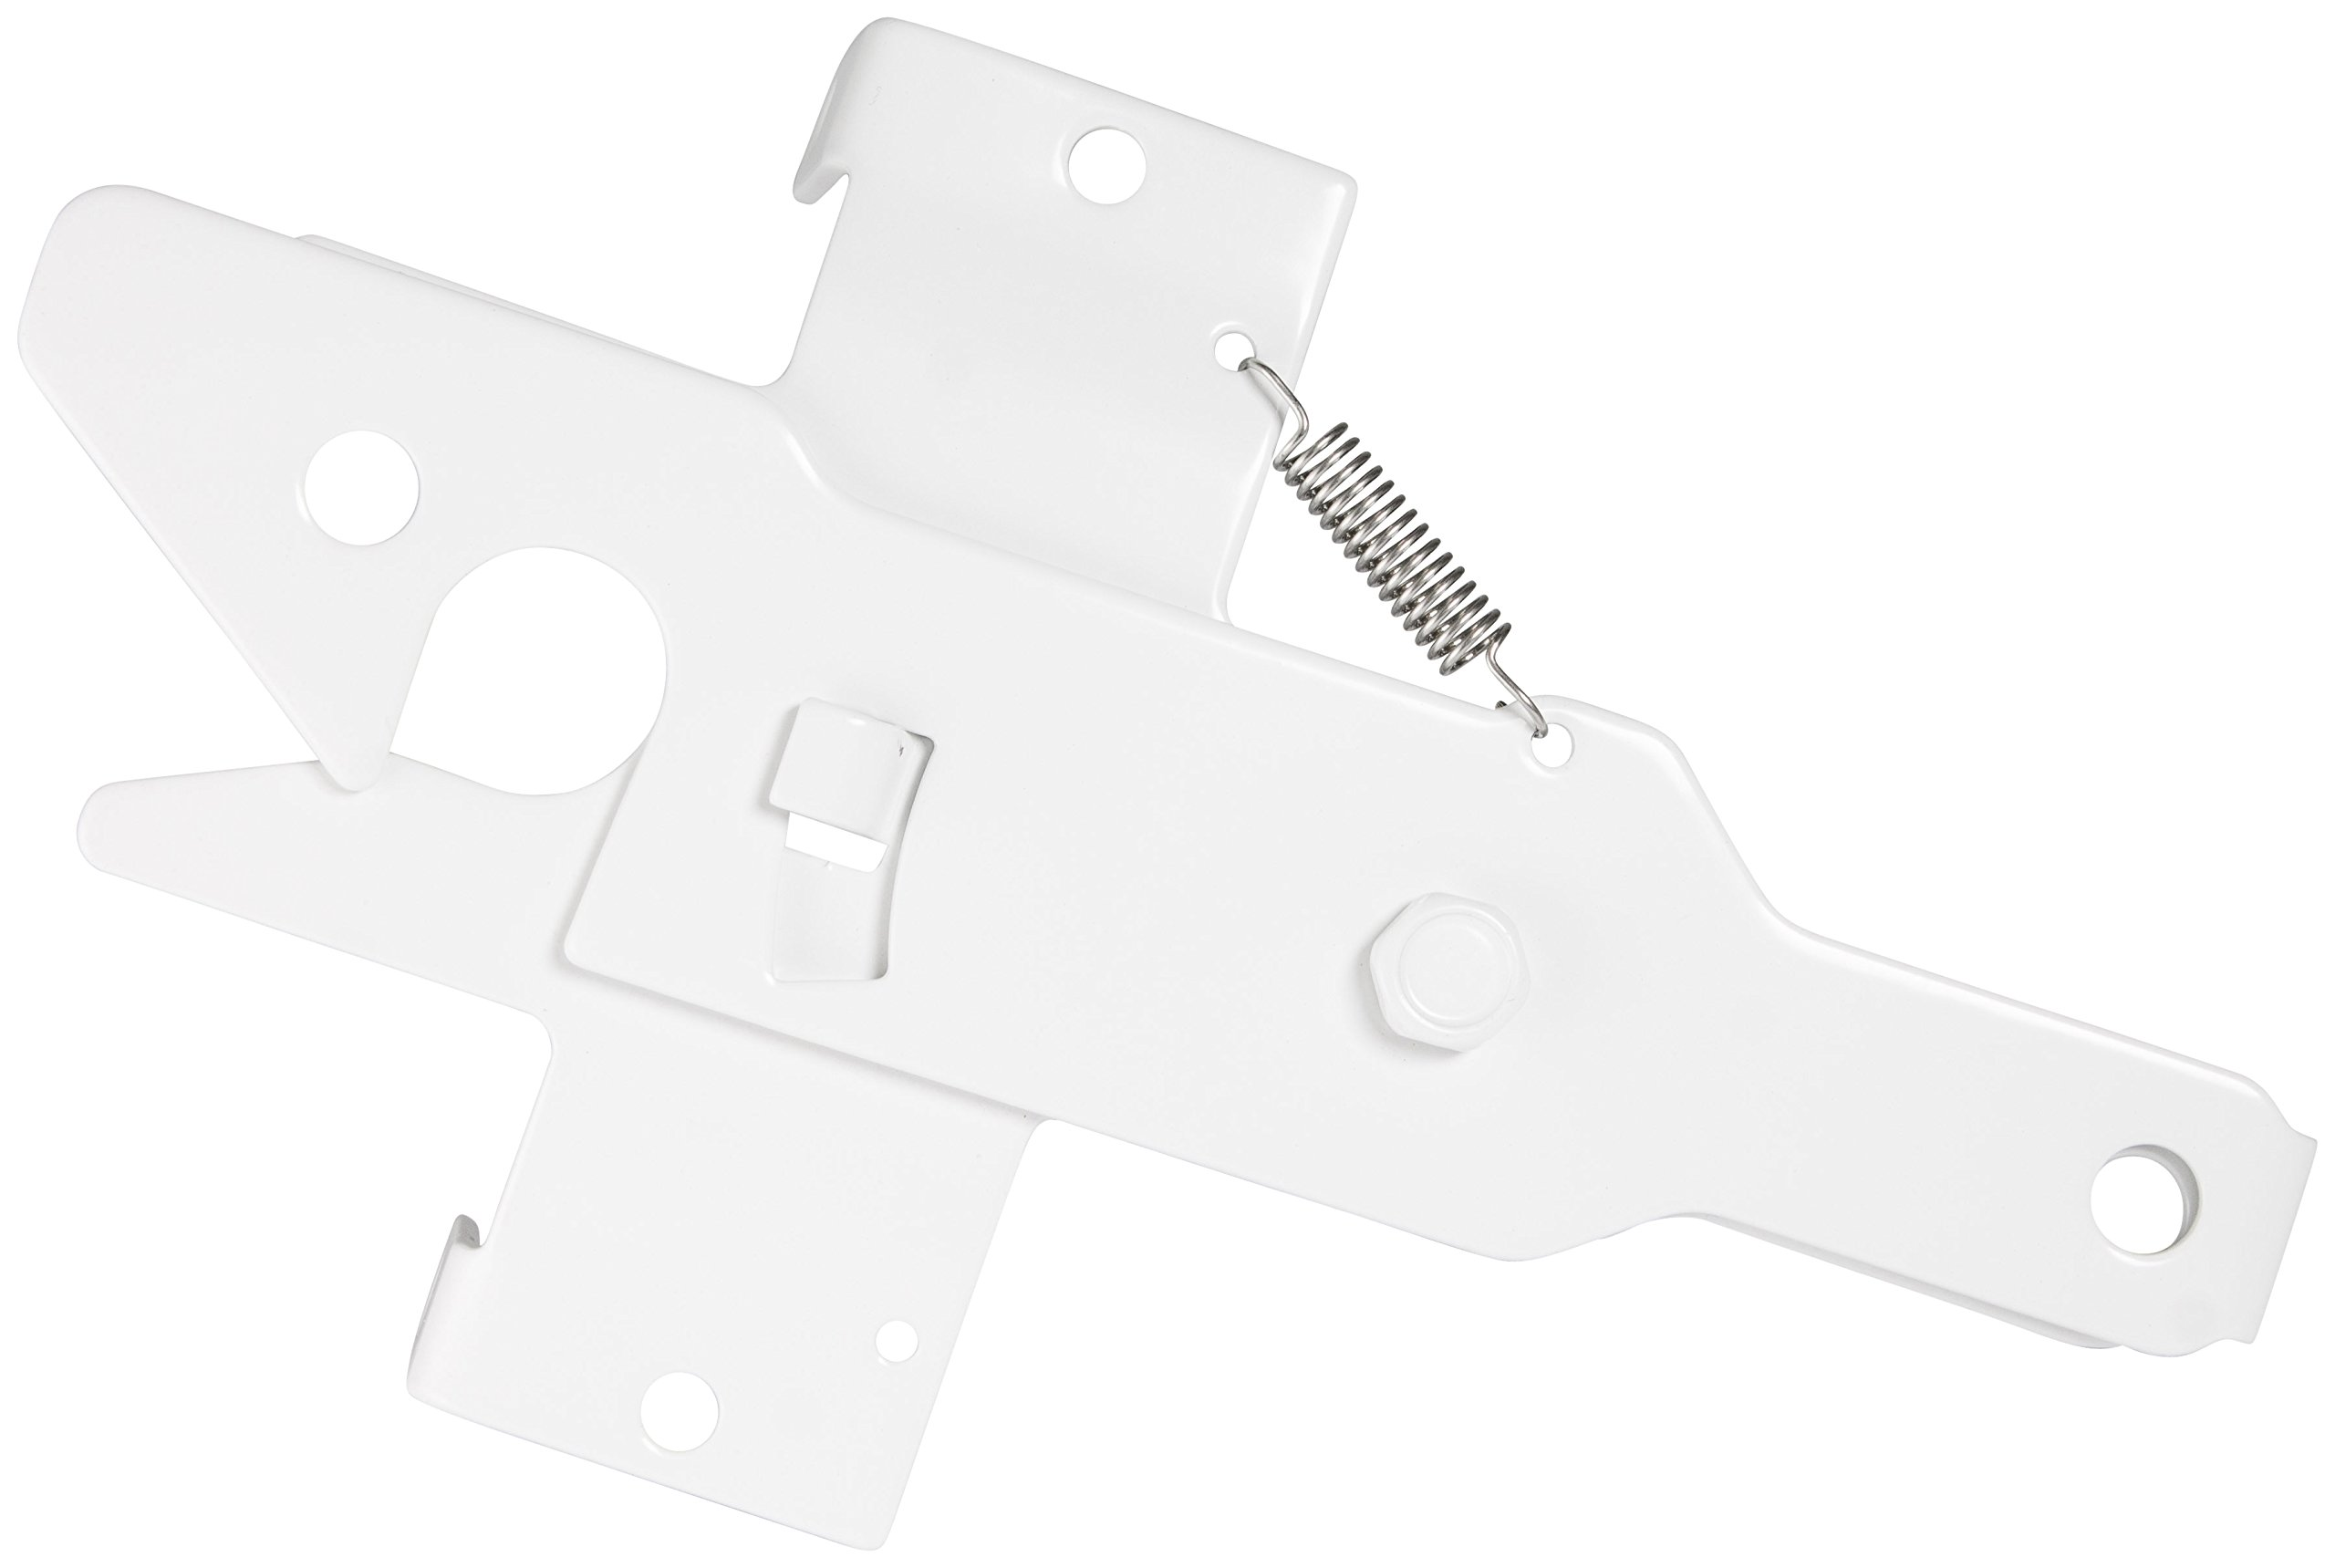 Nationwide Industries Stainless Steel Gate Latch For Vinyl - Pad-lockable, White by Nationwide Industries (Image #1)